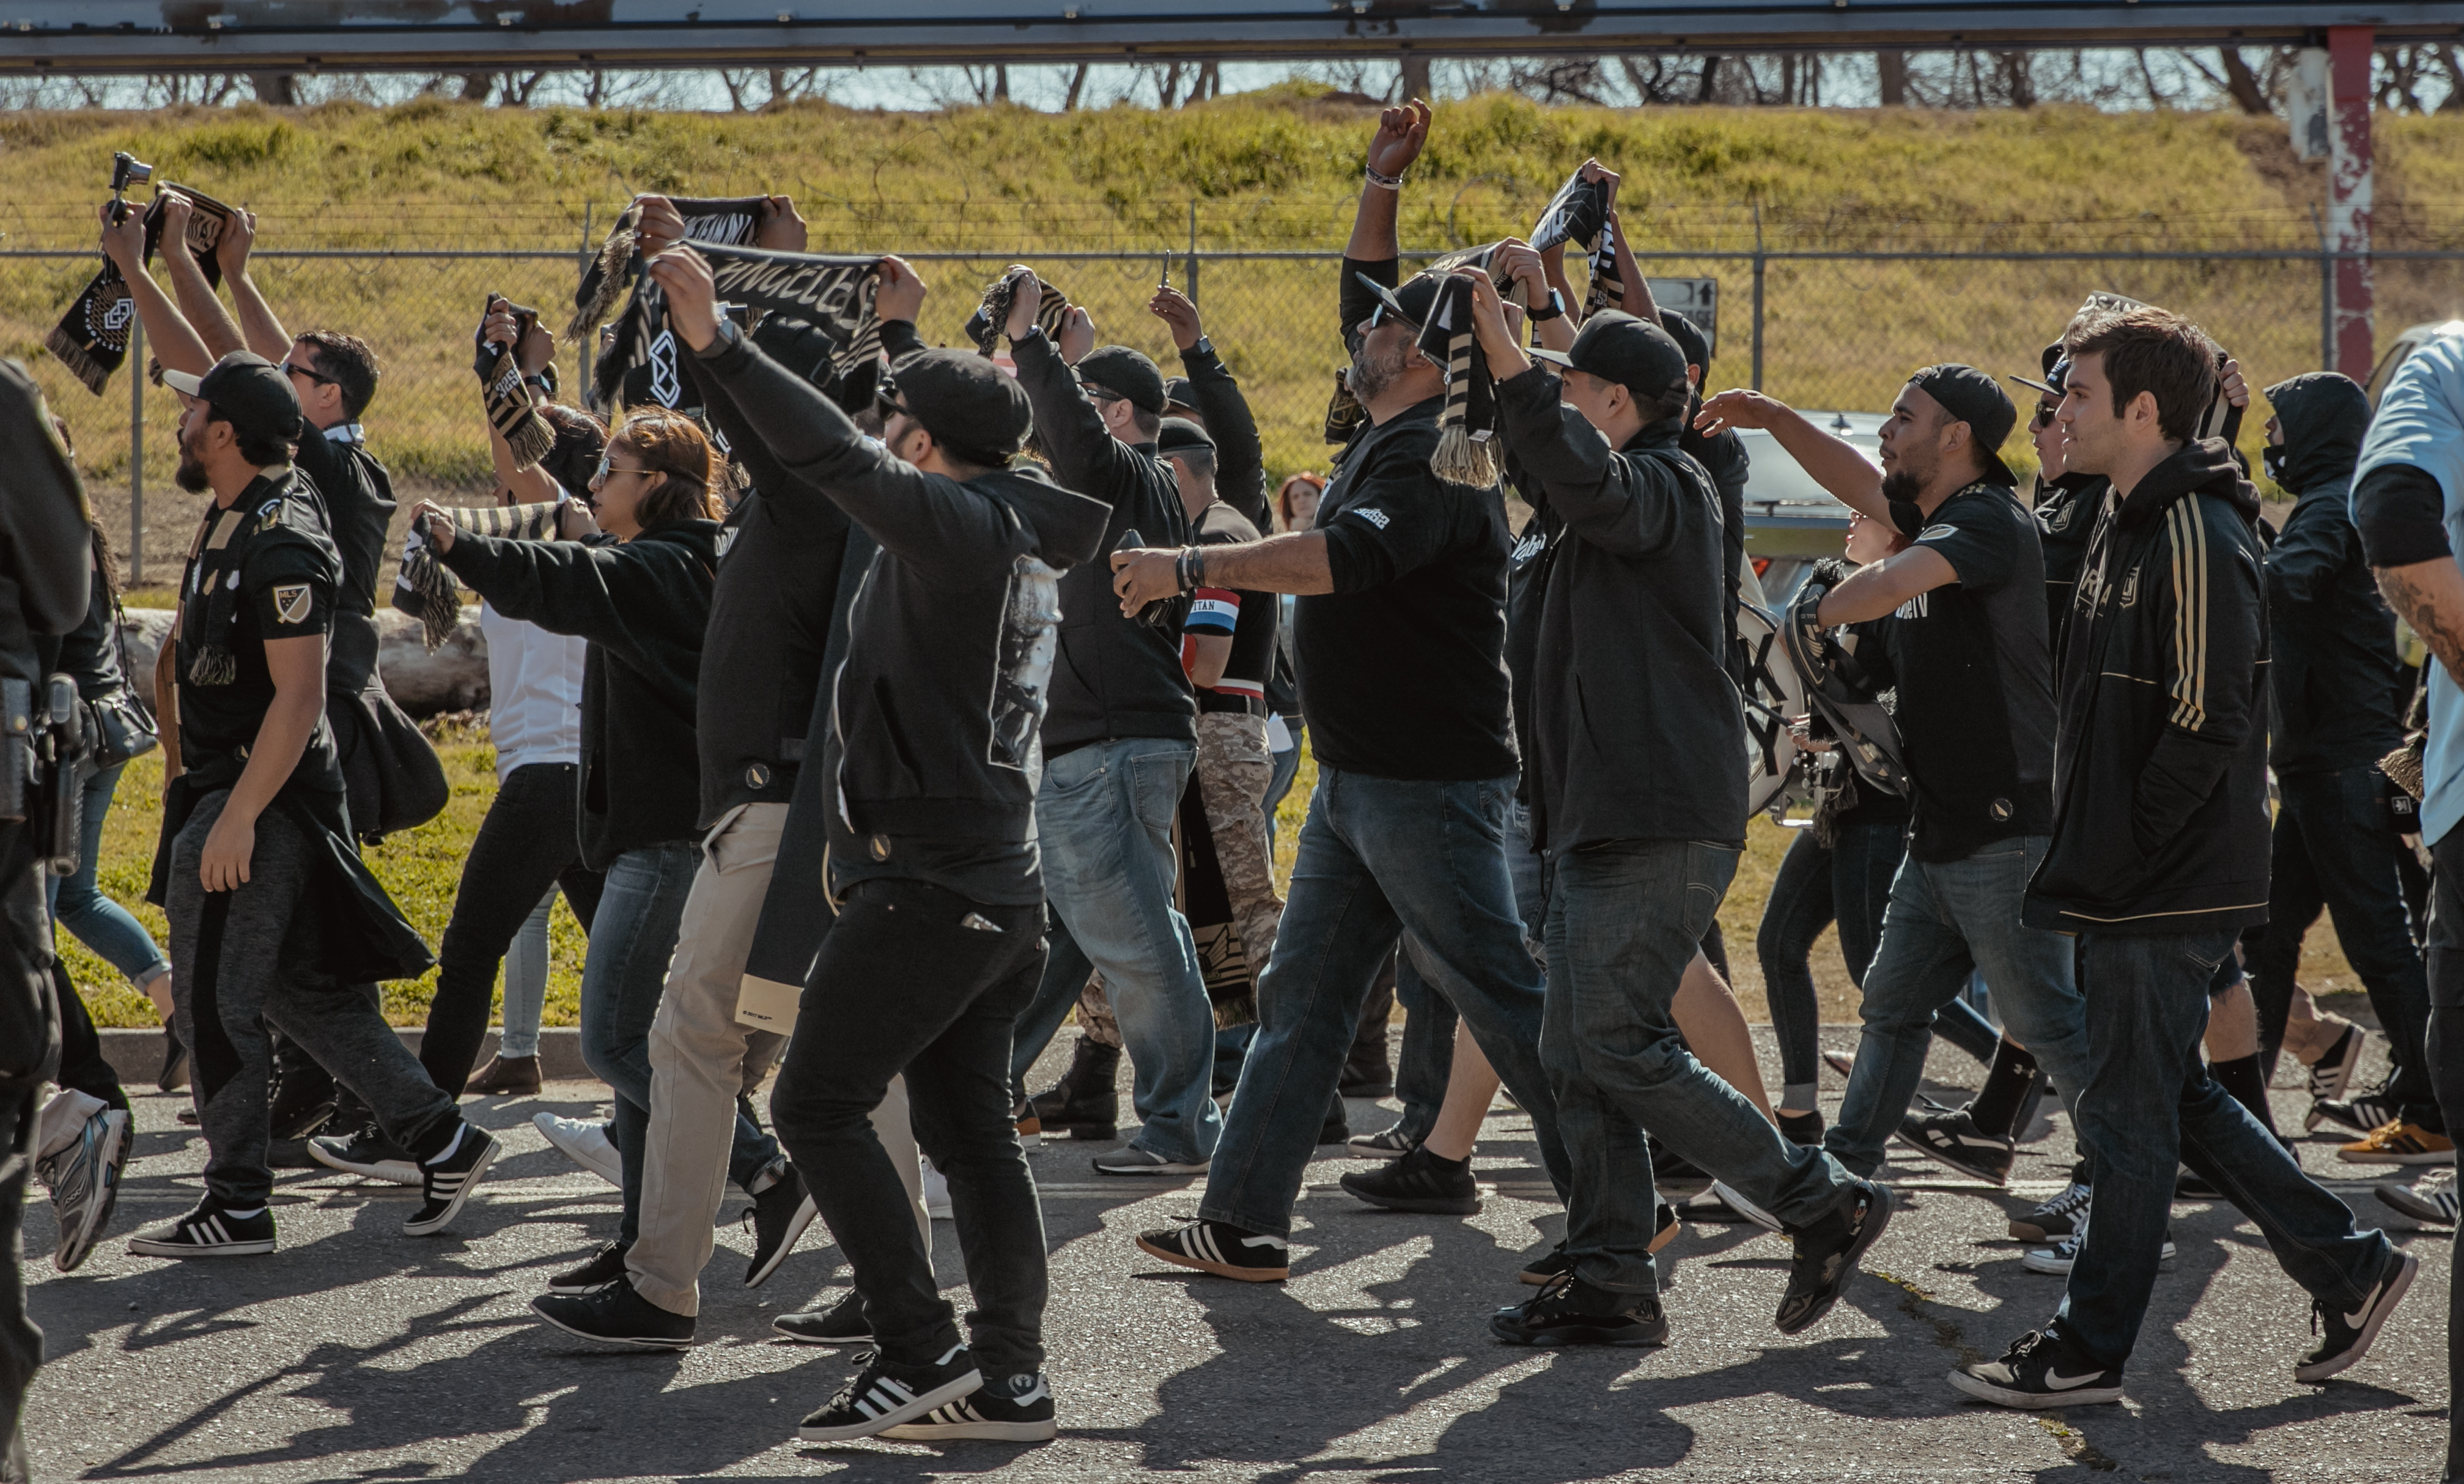 Heart Of The 3252: District 9 Ultras | Los Angeles Football Club